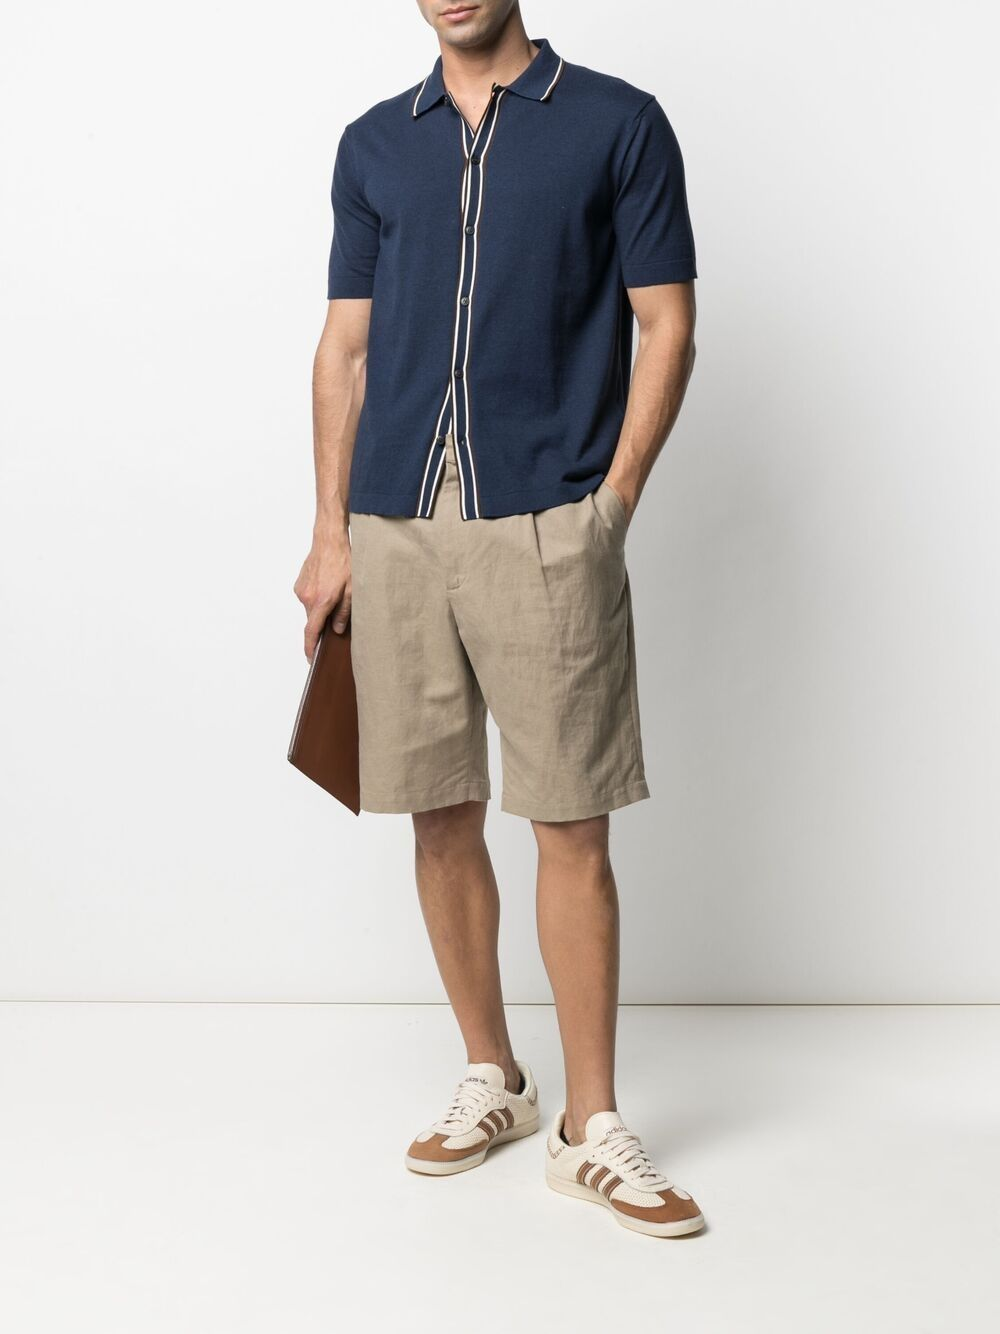 Navy-blue,white and brown cotton buttoned-up knitted shirt featuring stripe print ALTEA      215104409